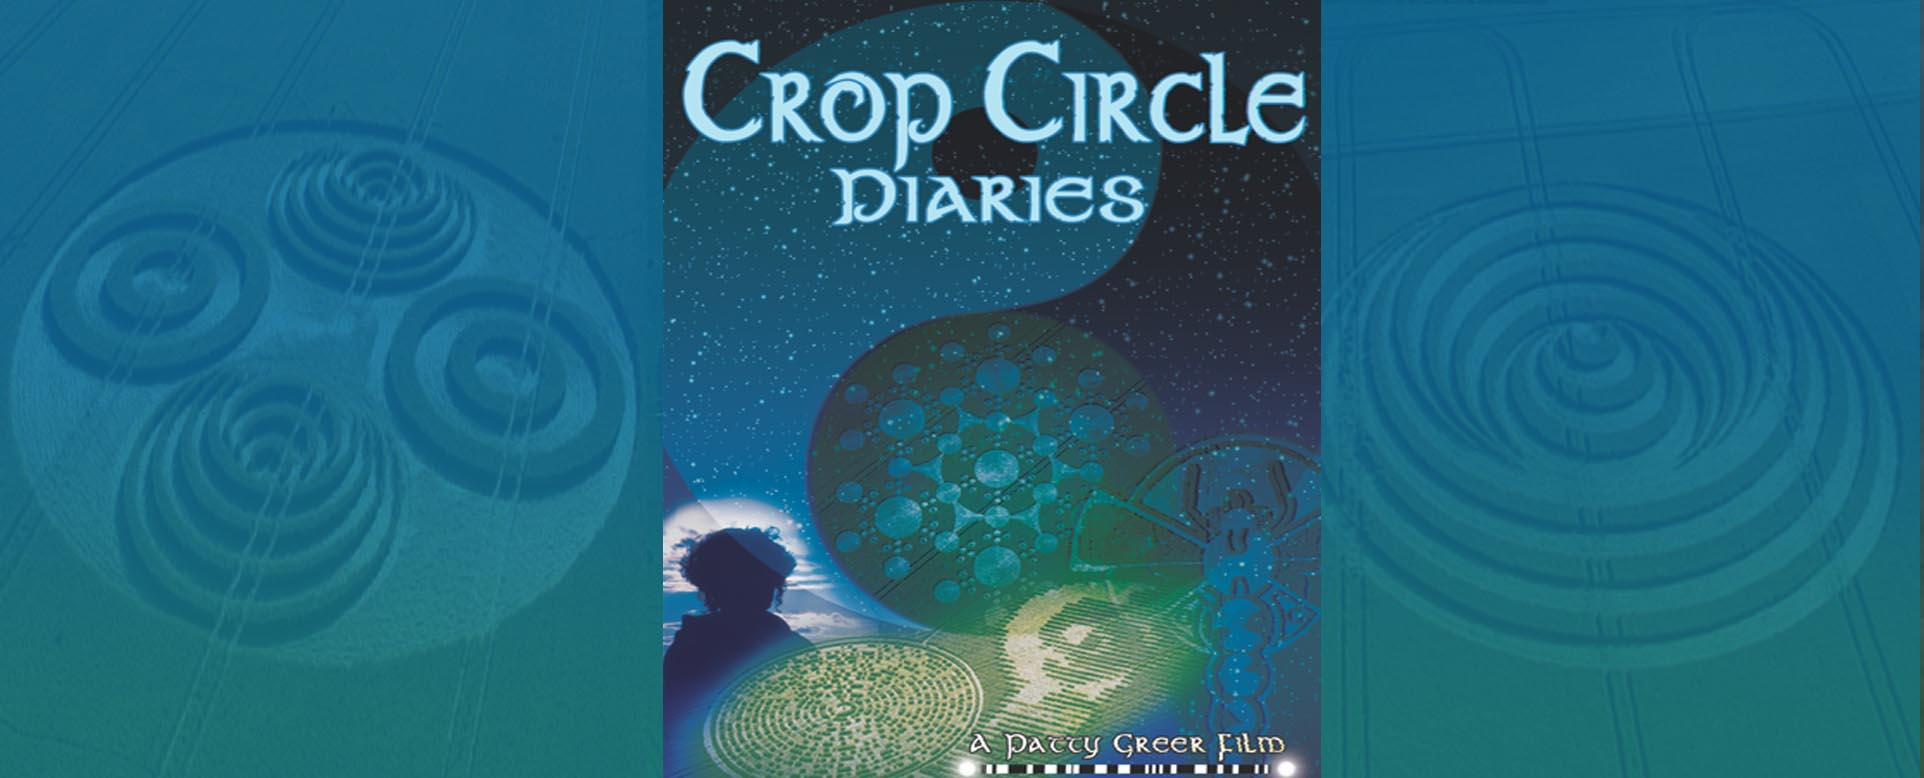 Crop Circle Diaries from Patty Greer Films